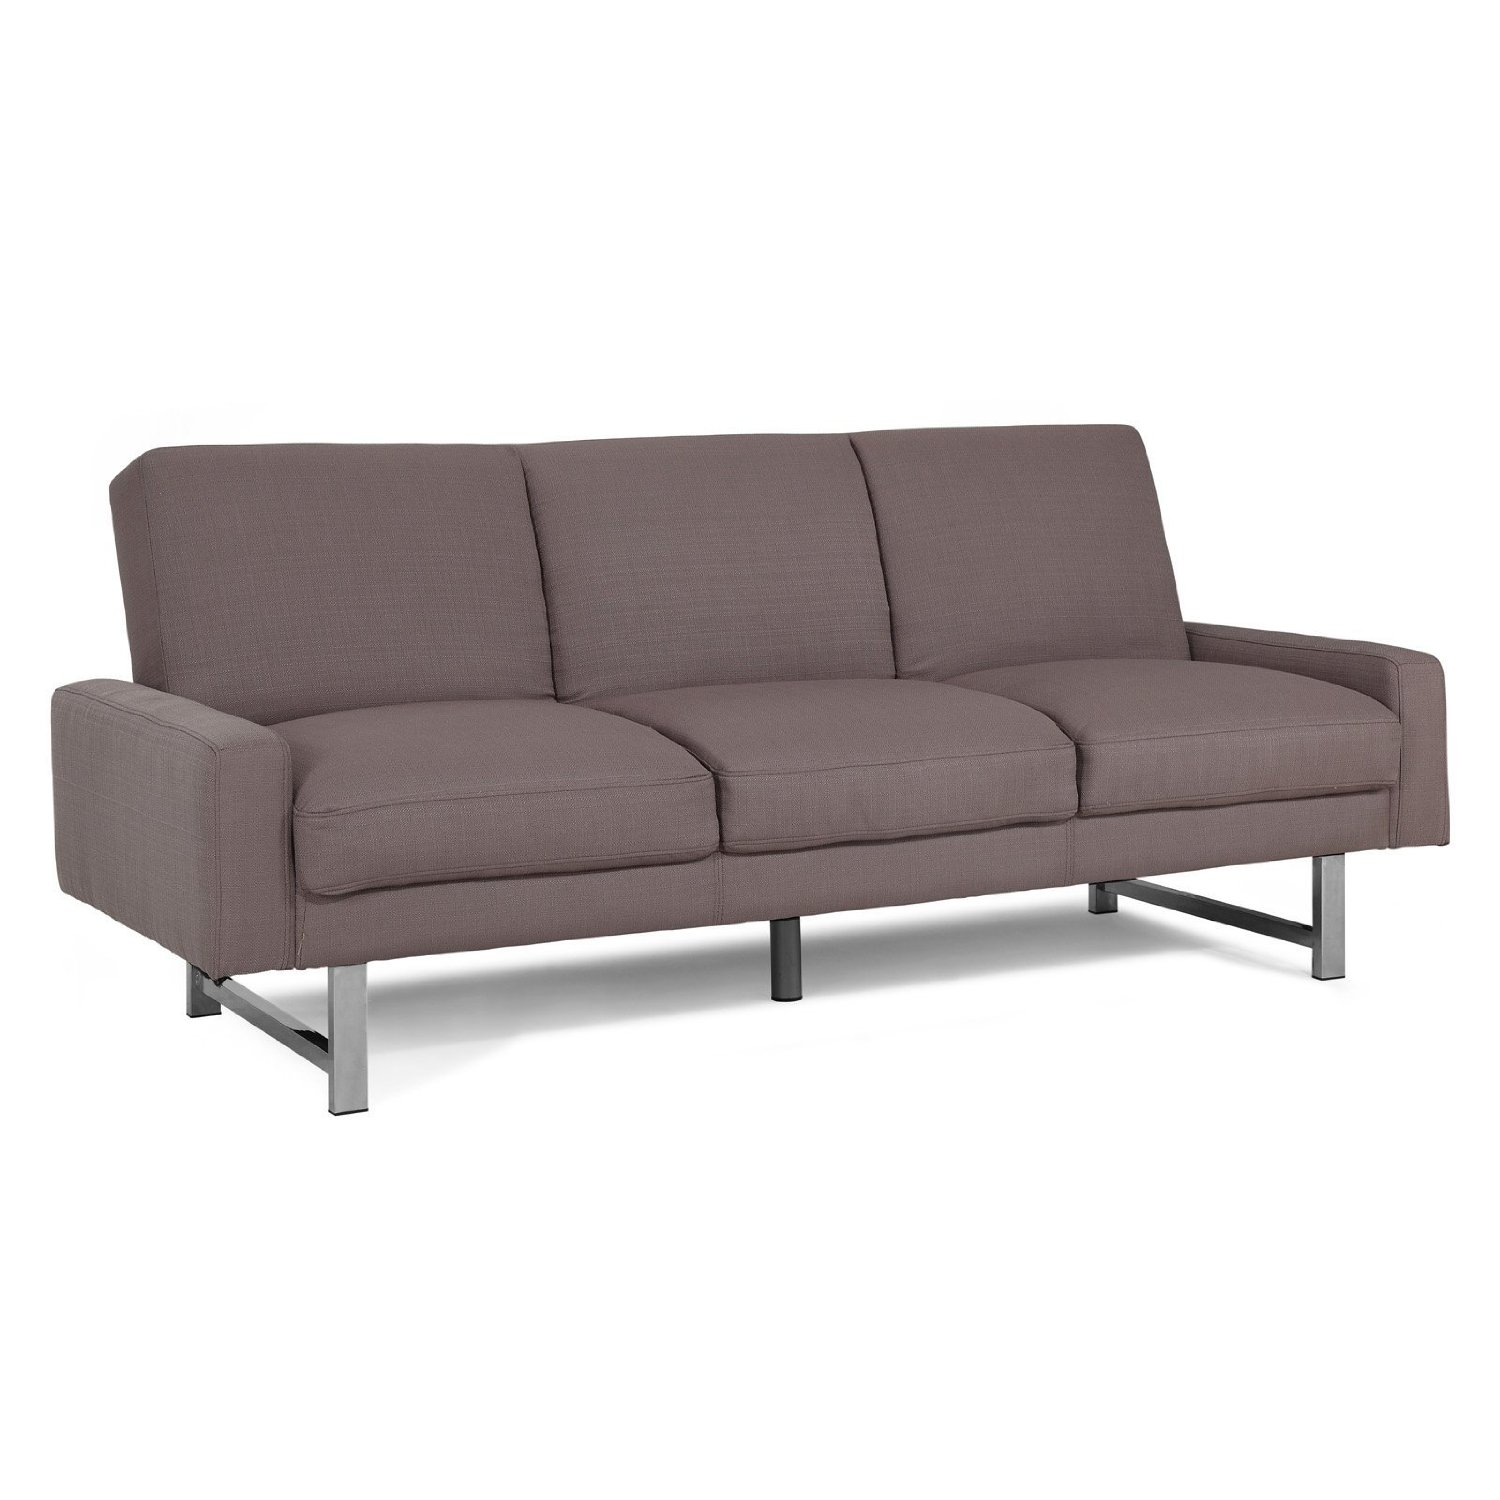 Convertible sofa convertible sectional sofa for Divan convertible